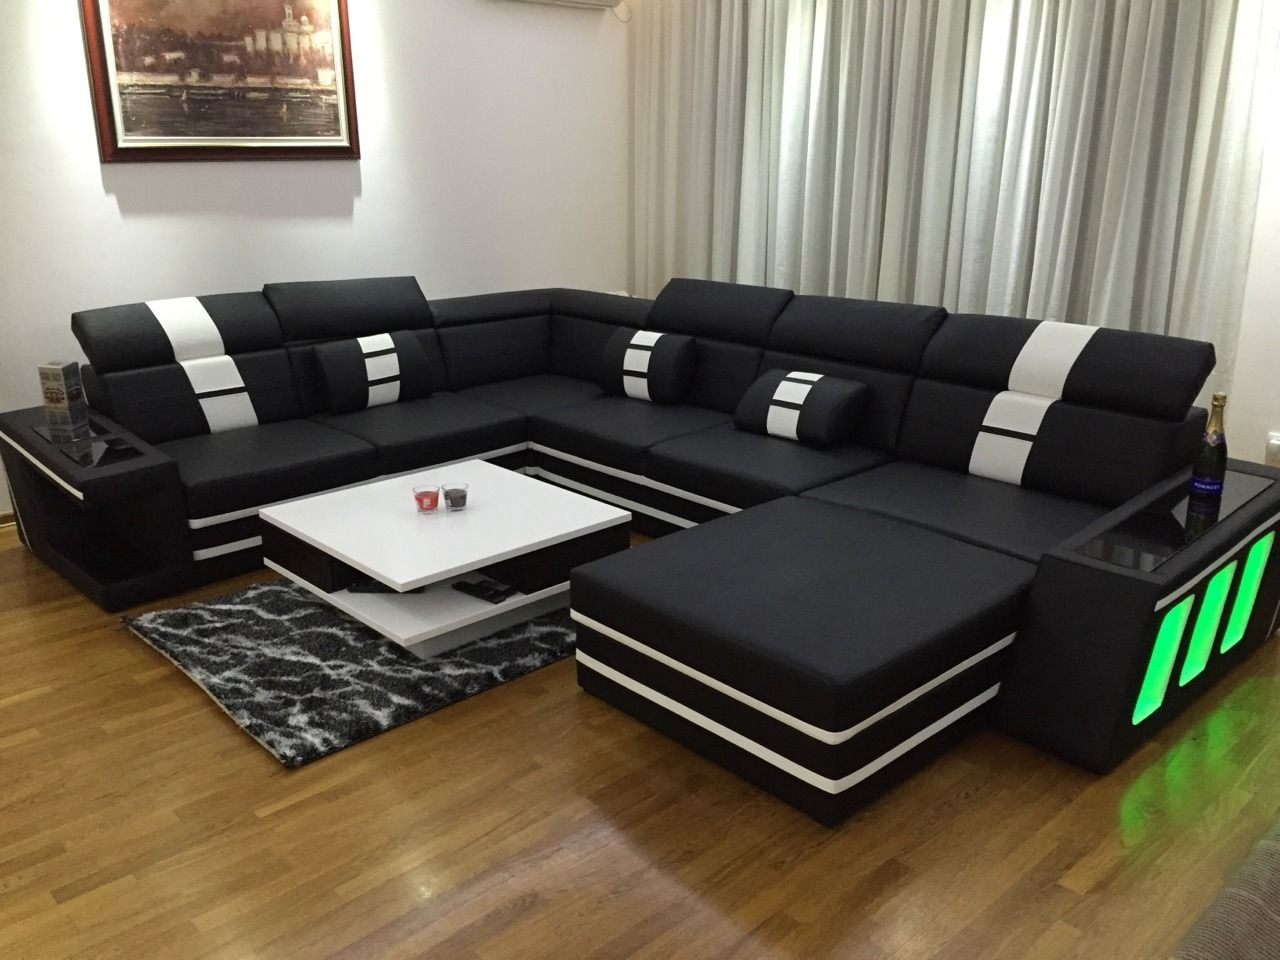 Couch Mit Led Designer Sofa Carezza Xxl Mit Led Beleuchtung In 2019